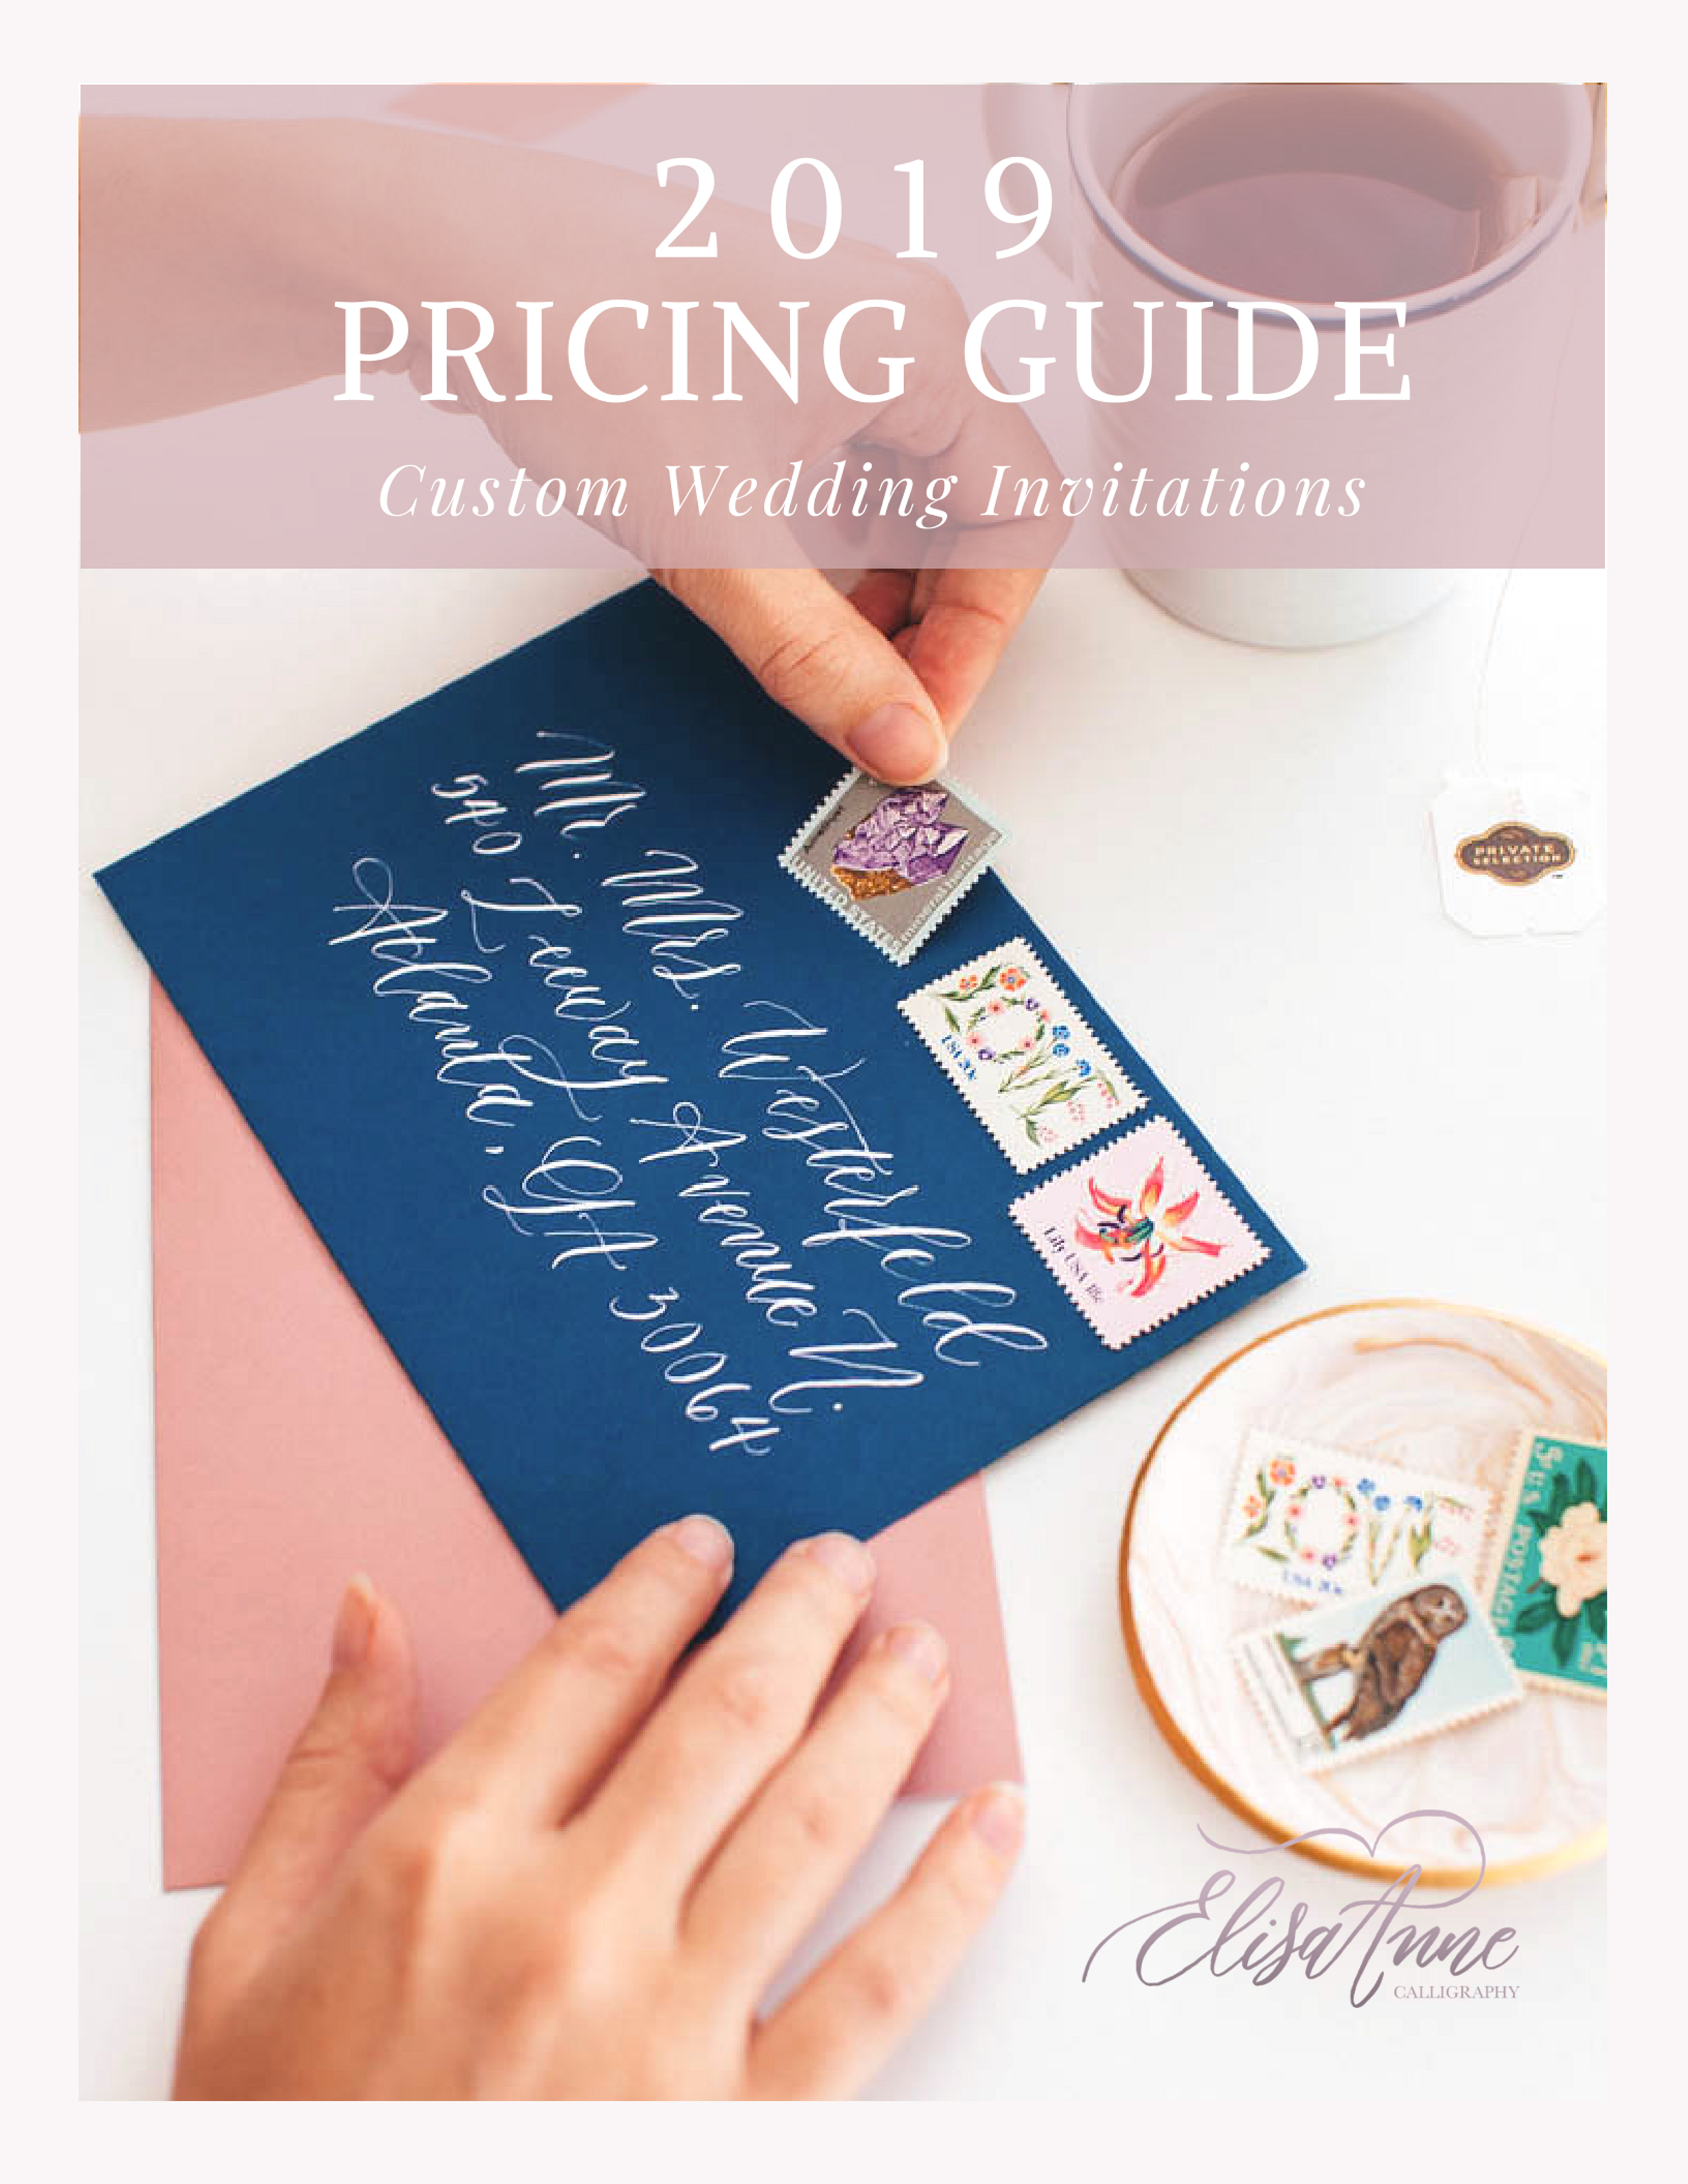 This custom wedding invitation pricing guide includes an introduction to me and my work, as well as testimonials, a custom wedding invitation timeline, pricing chart, portfolio images, and more!